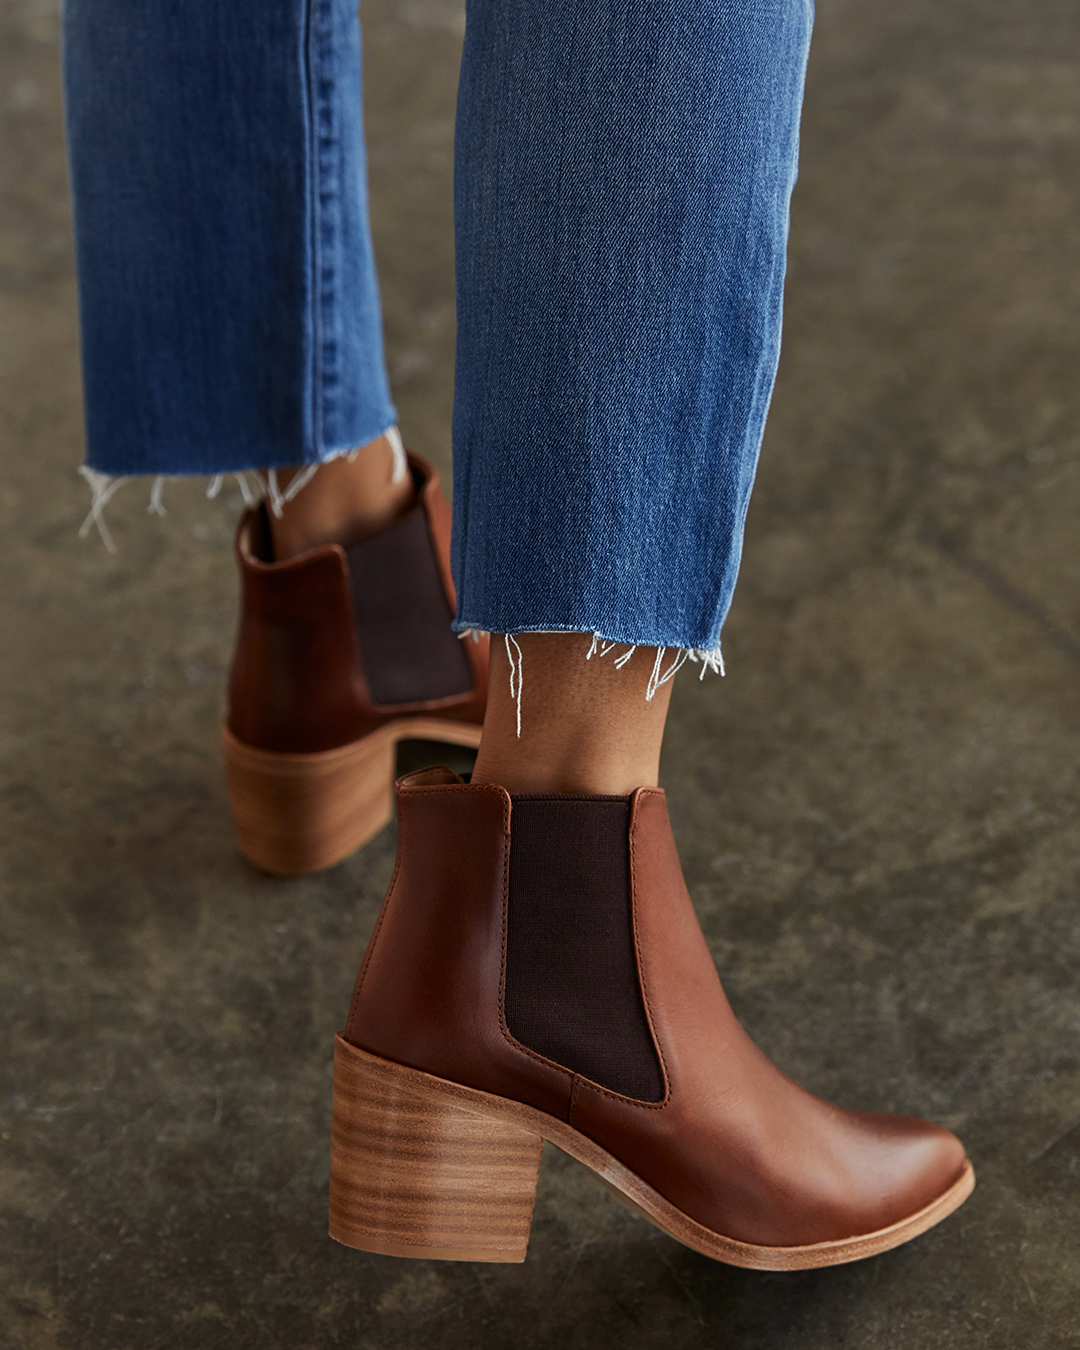 Nisolo Women's Heeled Chelsea Boot in brandy | Ethically Made